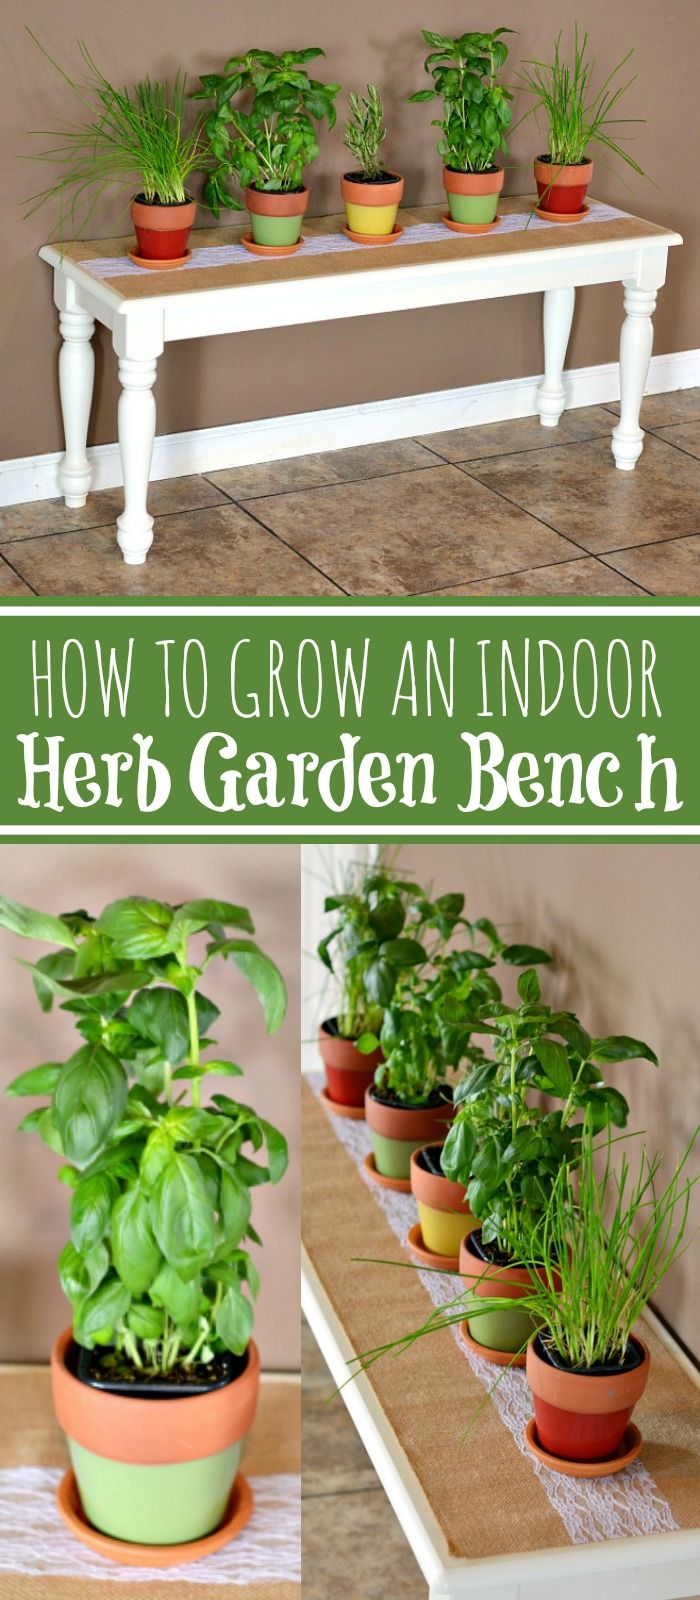 Potted Herb Garden Ideas container gardening bonnie plants How To Grow An Indoor Potted Herb Garden Bench Diy